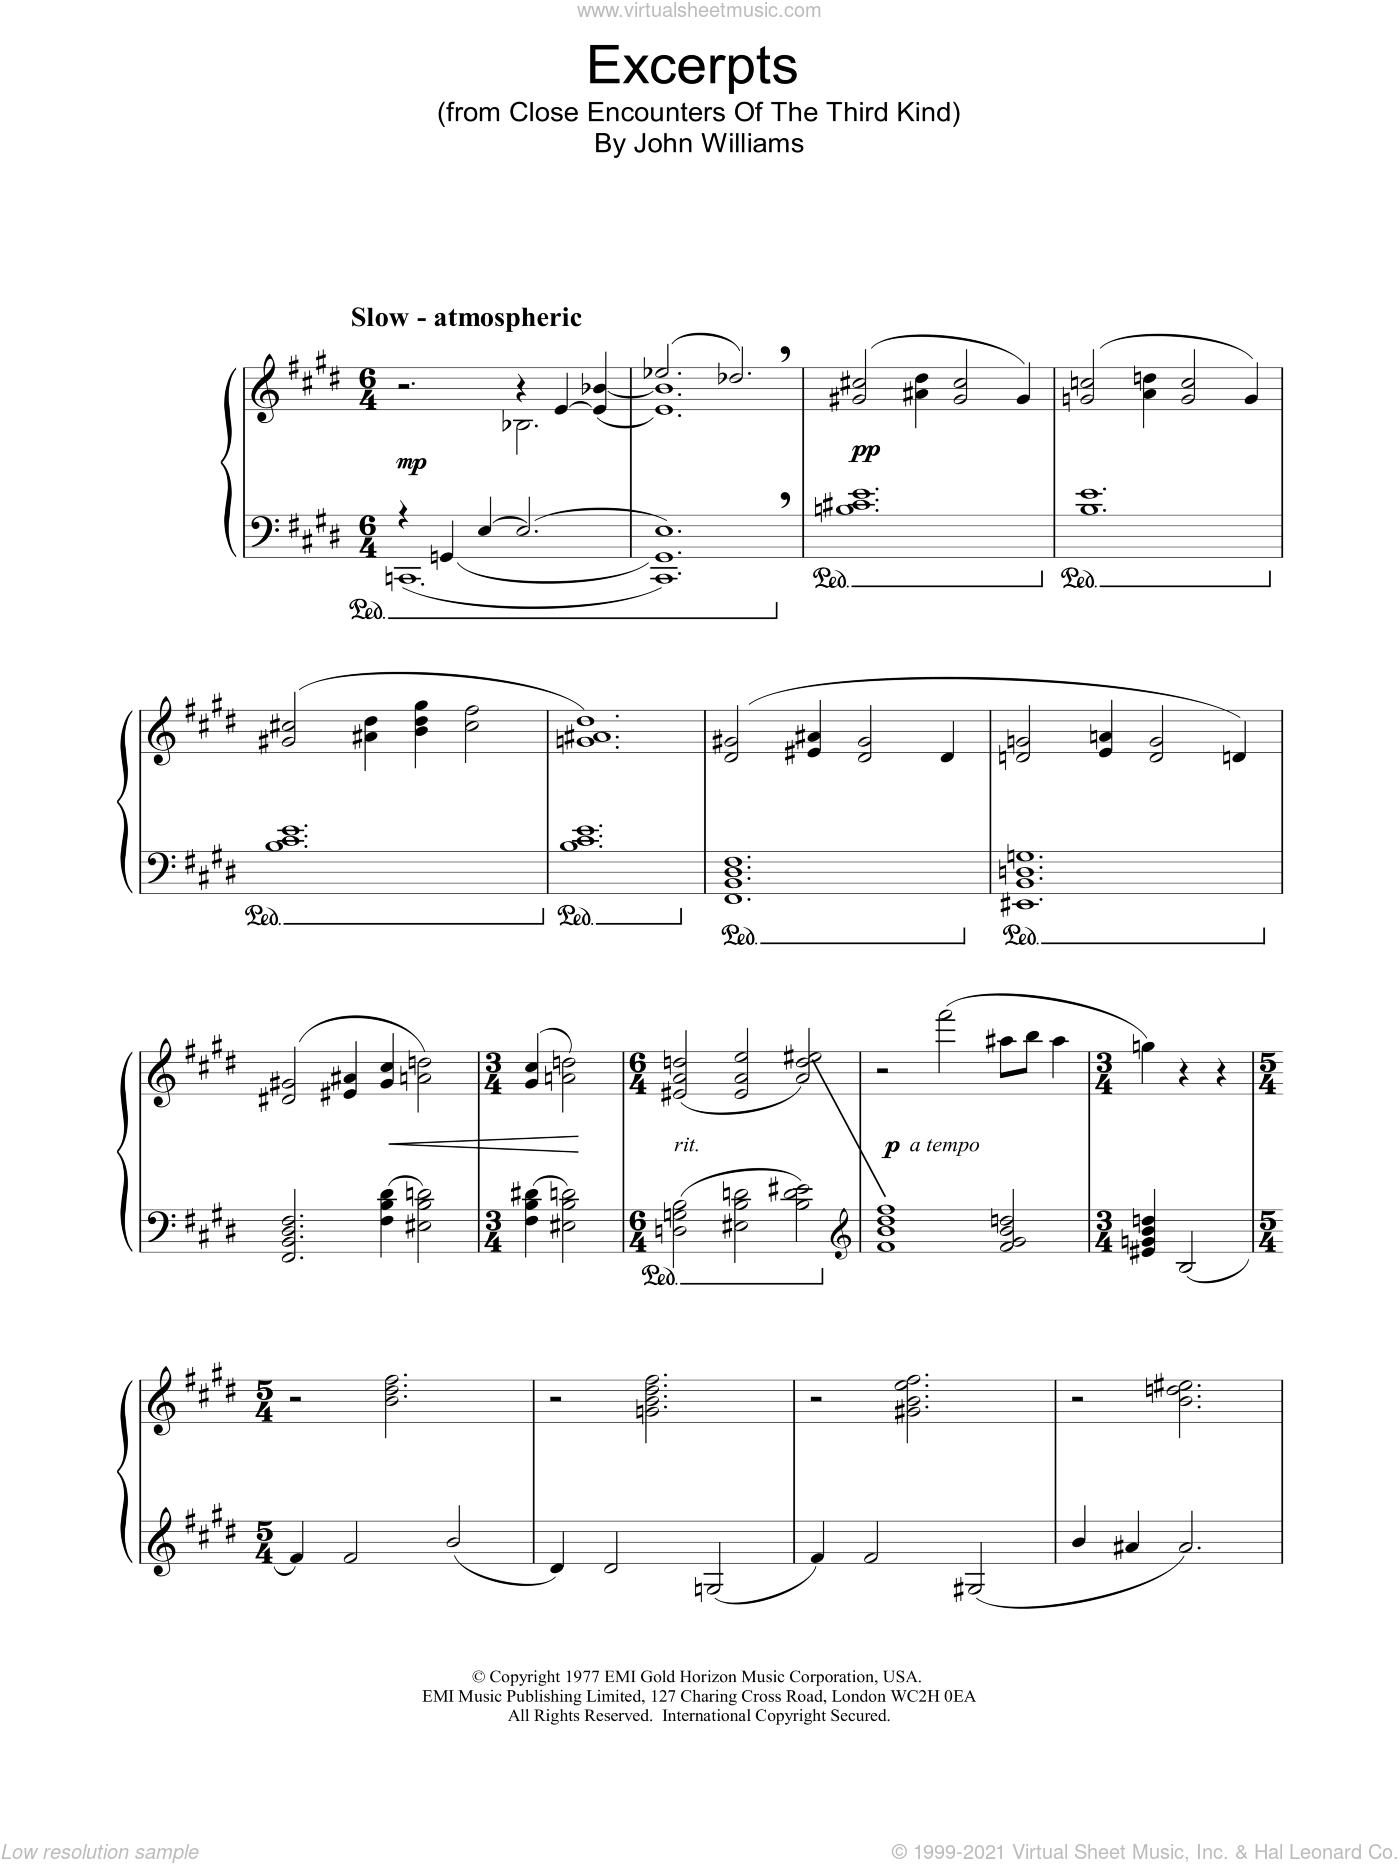 Excerpts from Close Encounters Of The Third Kind sheet music for piano solo by John Williams